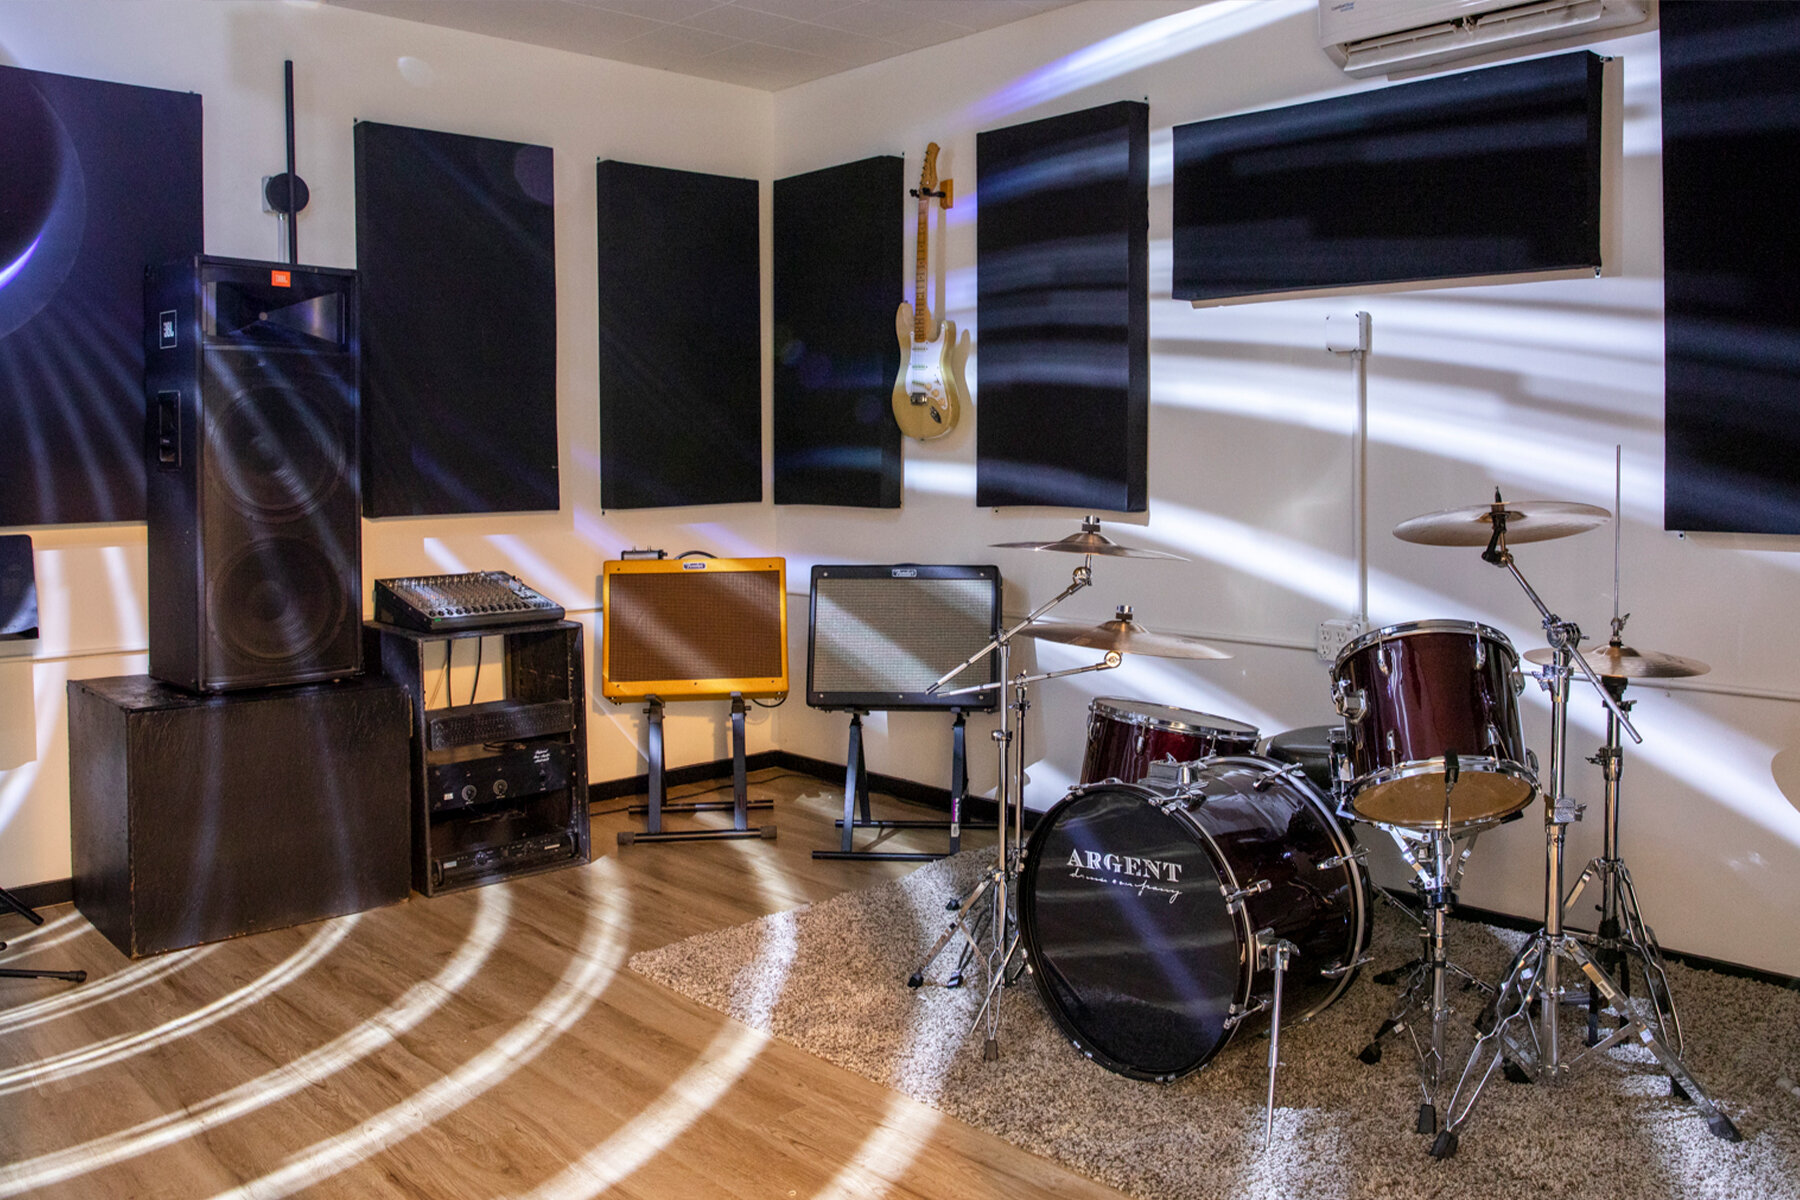 Room 4 - 17x12.5 $22 An HourFender Blues DeluxeFender Blue JRFender Hot RodFender RUMBLE 410 Cabinet & RUMBLE 800 HeadArgent Kit (24, 12, 13, 16; 14 x 6 1/2 snare)Behringer consoleJBL speakers and monitor